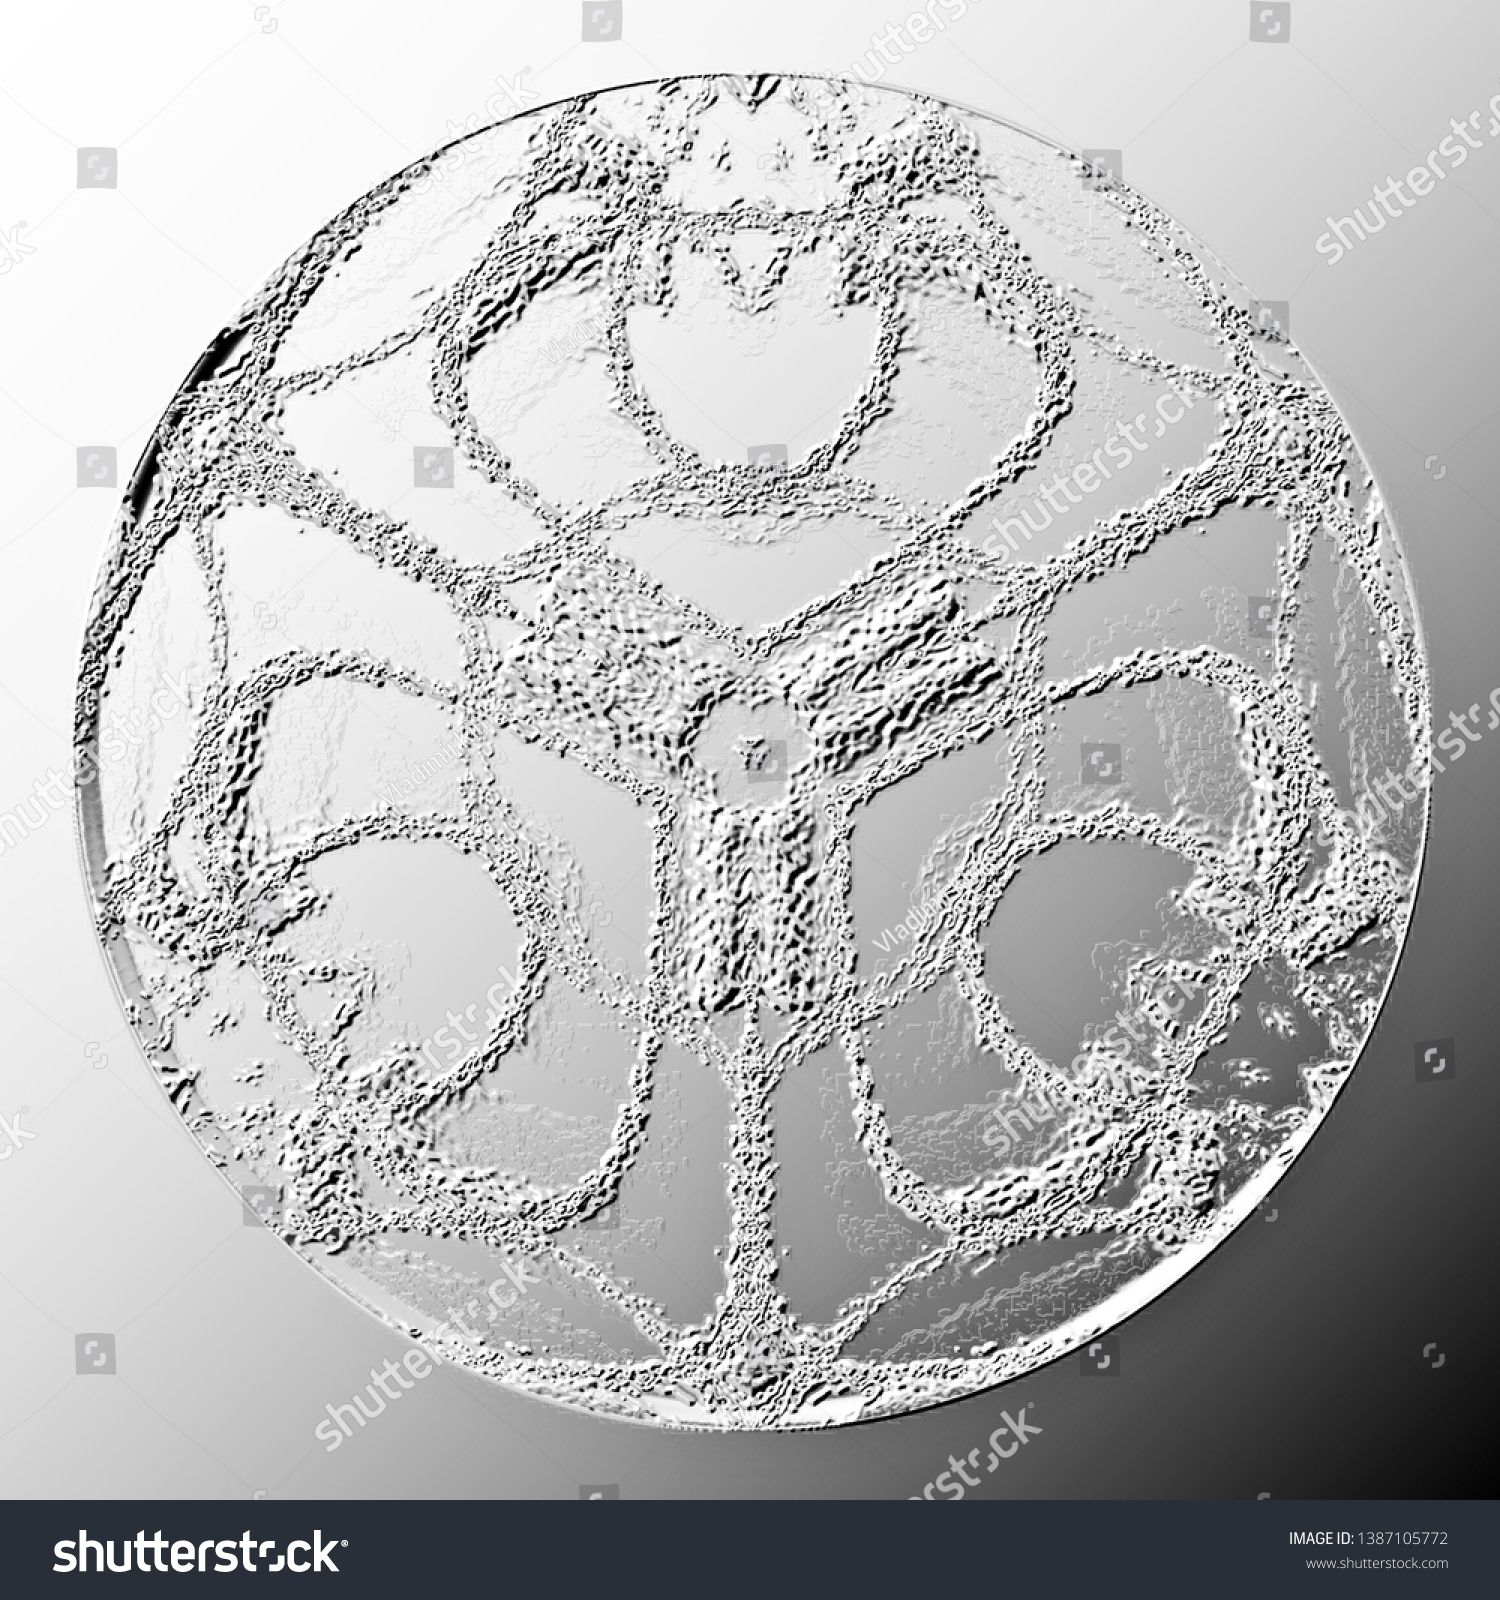 Black and white relief disc on gradient background